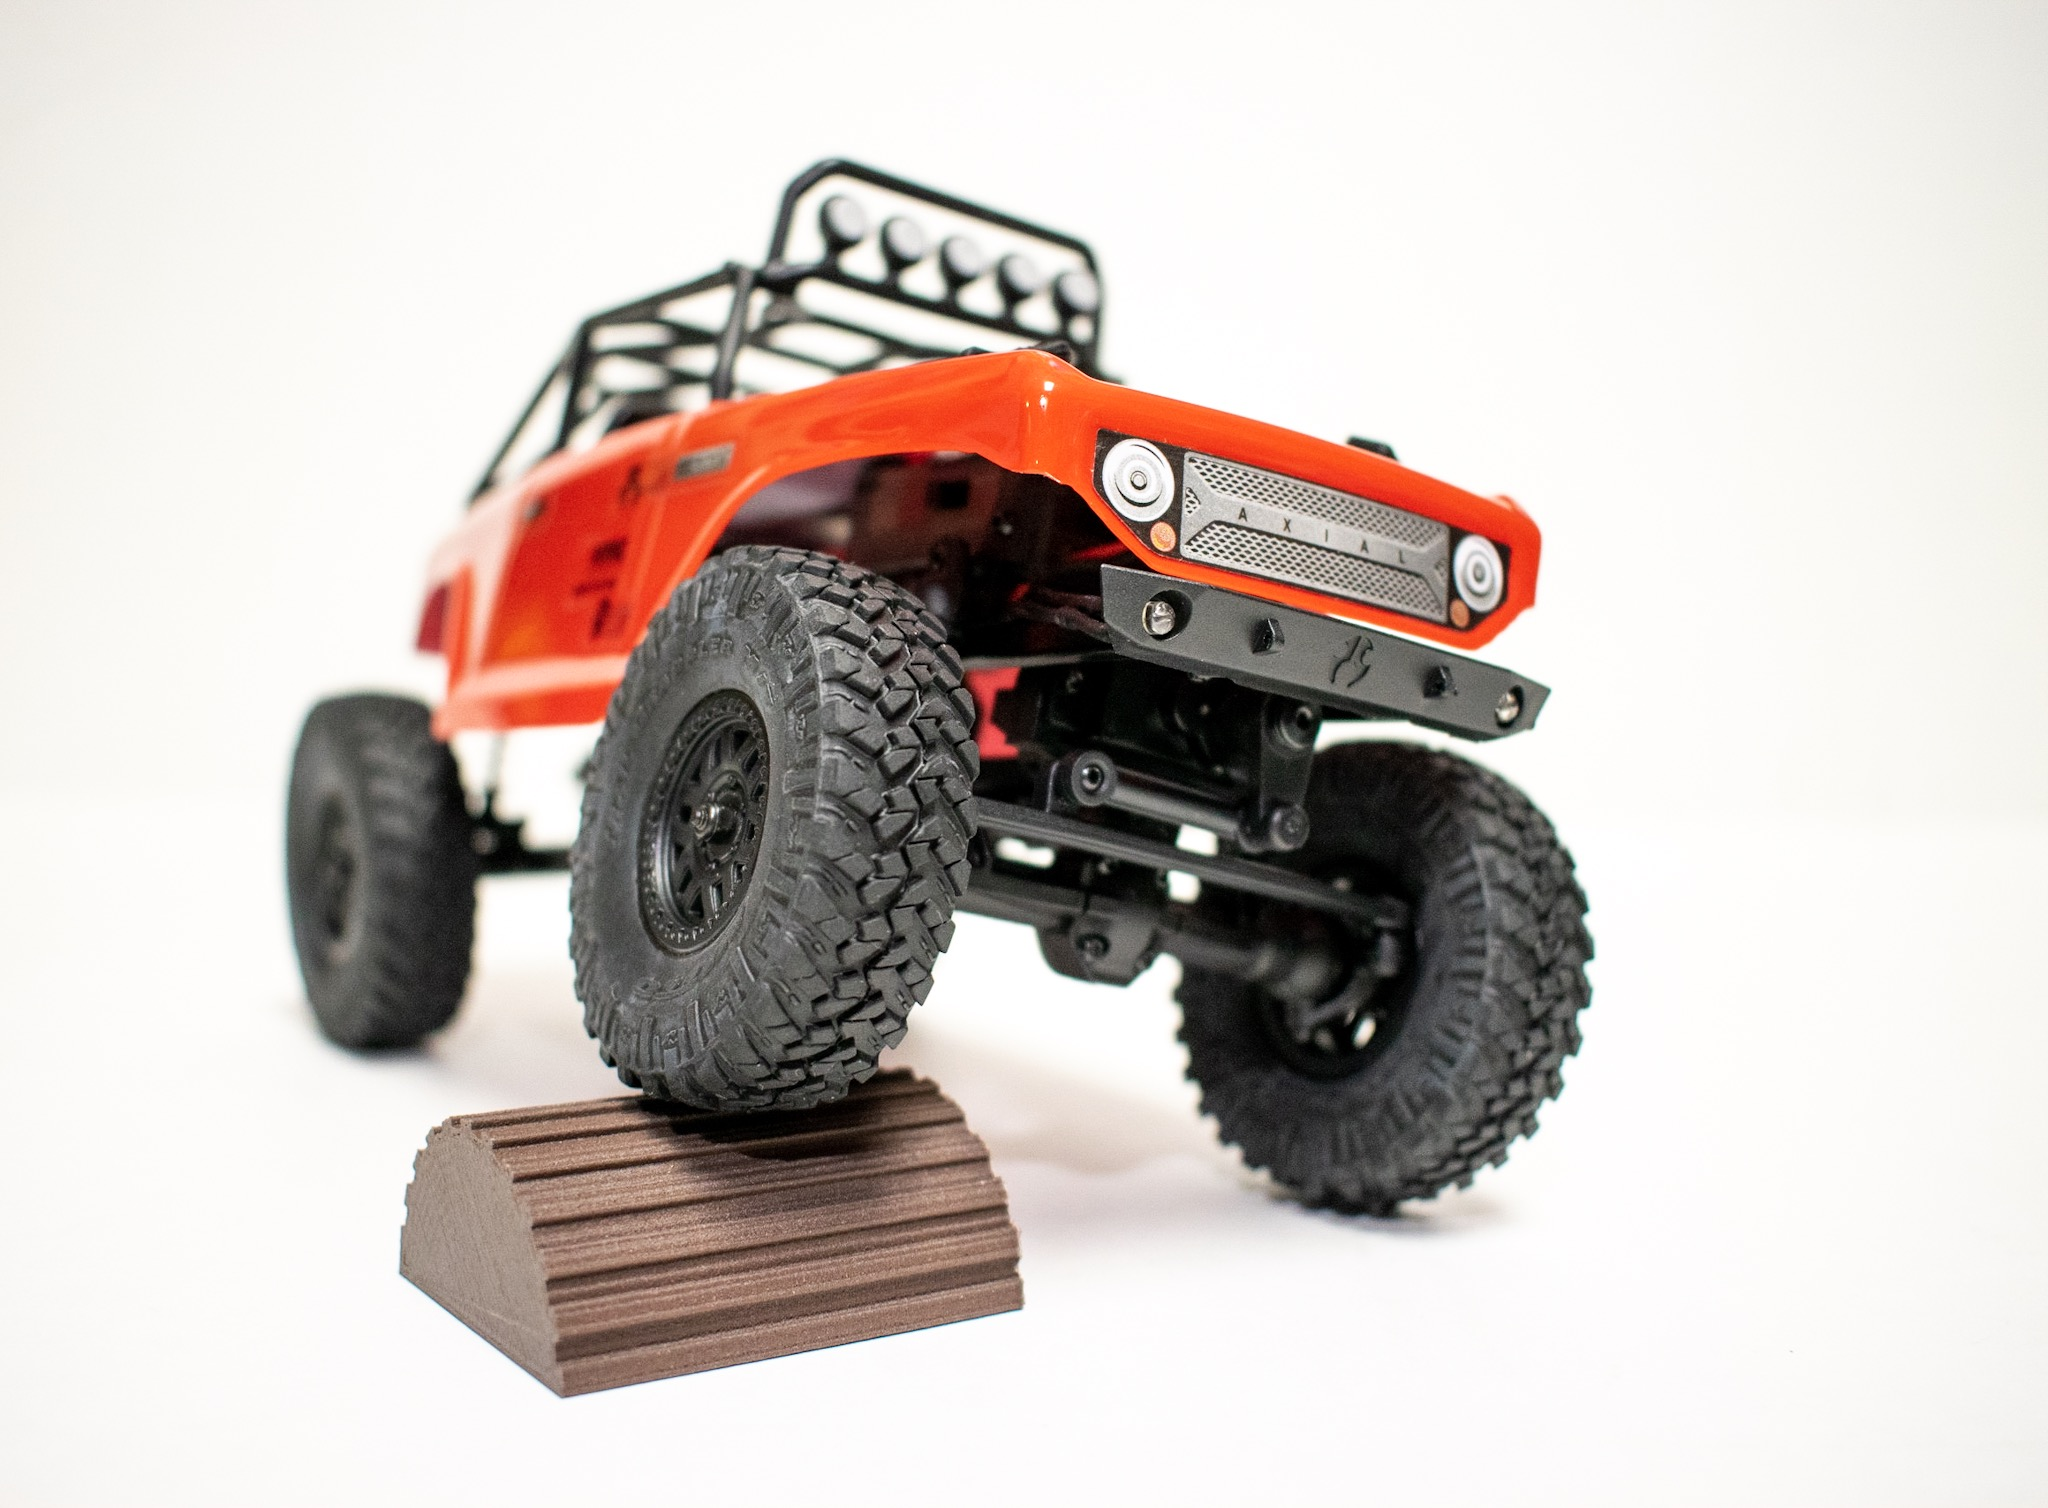 Axial SCX24 Deadbolt - Log 5